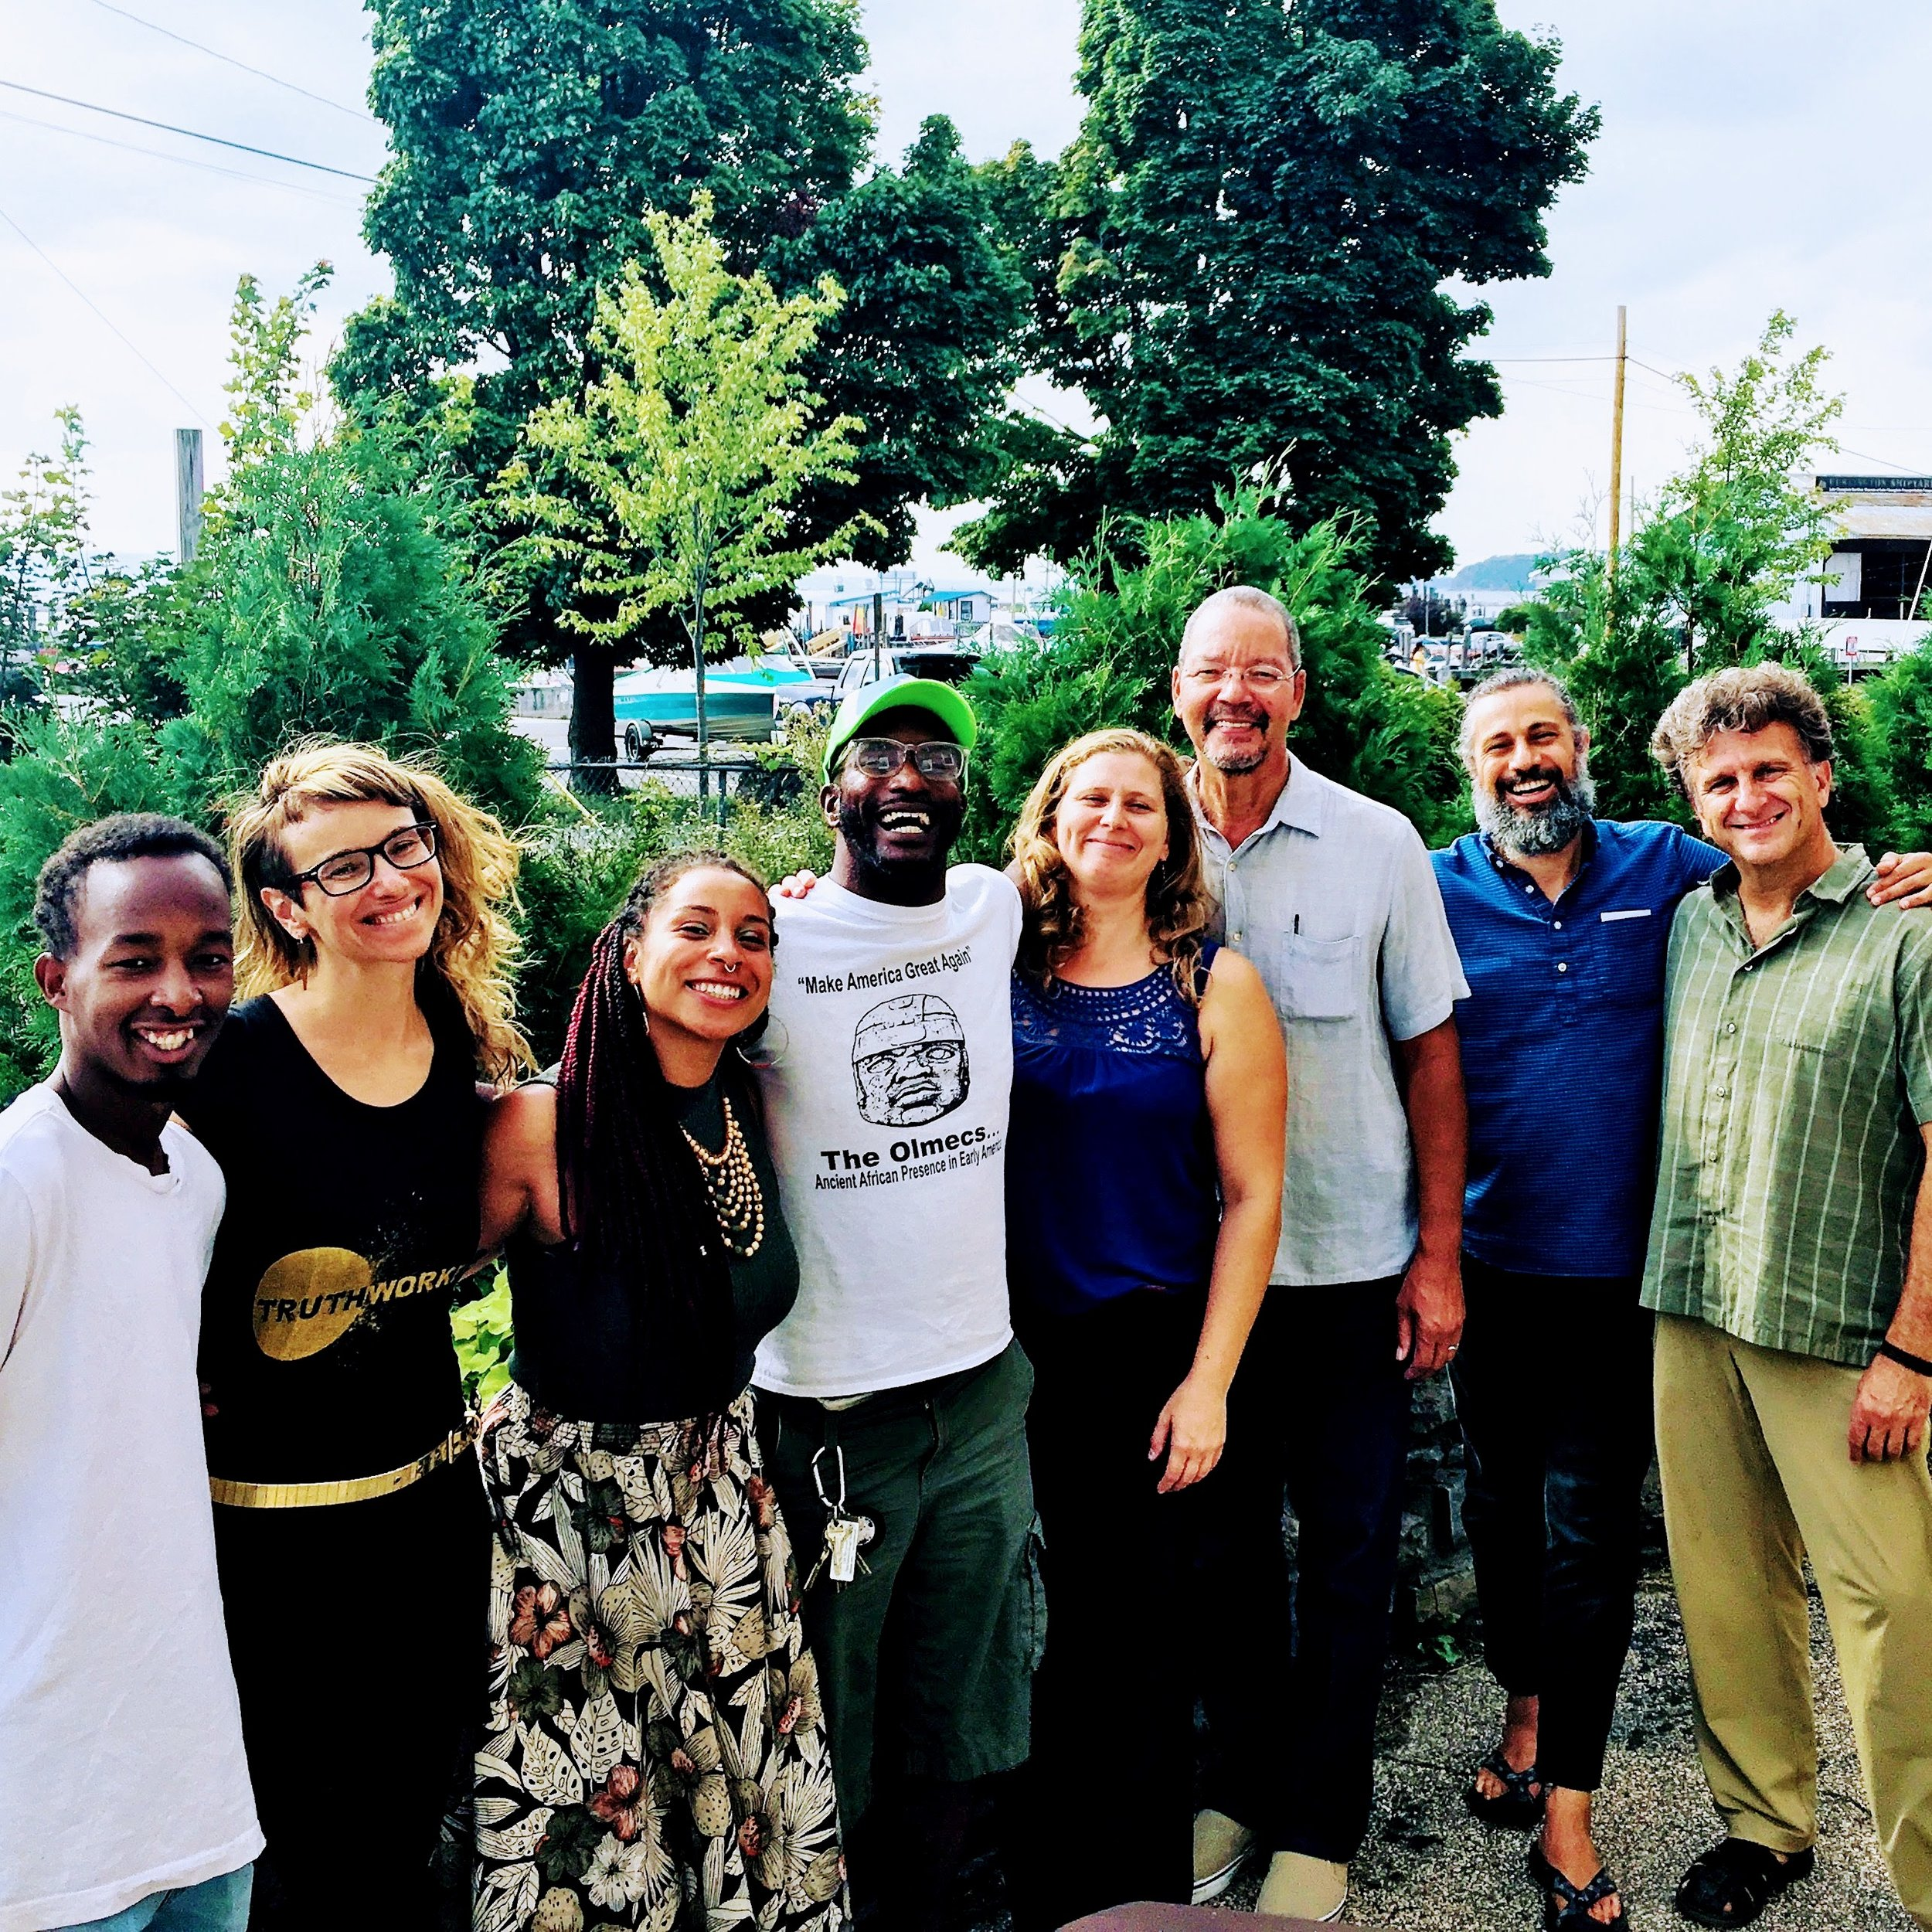 CONTACT US - For Trainings or Consulting: info@regeneratechange.comRegenerate Change is a program of Empowerment Works, an San Francisco Bay Area not-for-profit organization. Director/Facilitator Abrah Dresdale lives in Western Massachusetts; Facilitator Jasmine Fuego lives in Berkeley, CA.Abrah Dresdale: info@abrahdresdale.comJasmine Fuego: jasminecsaavedra@gmail.com